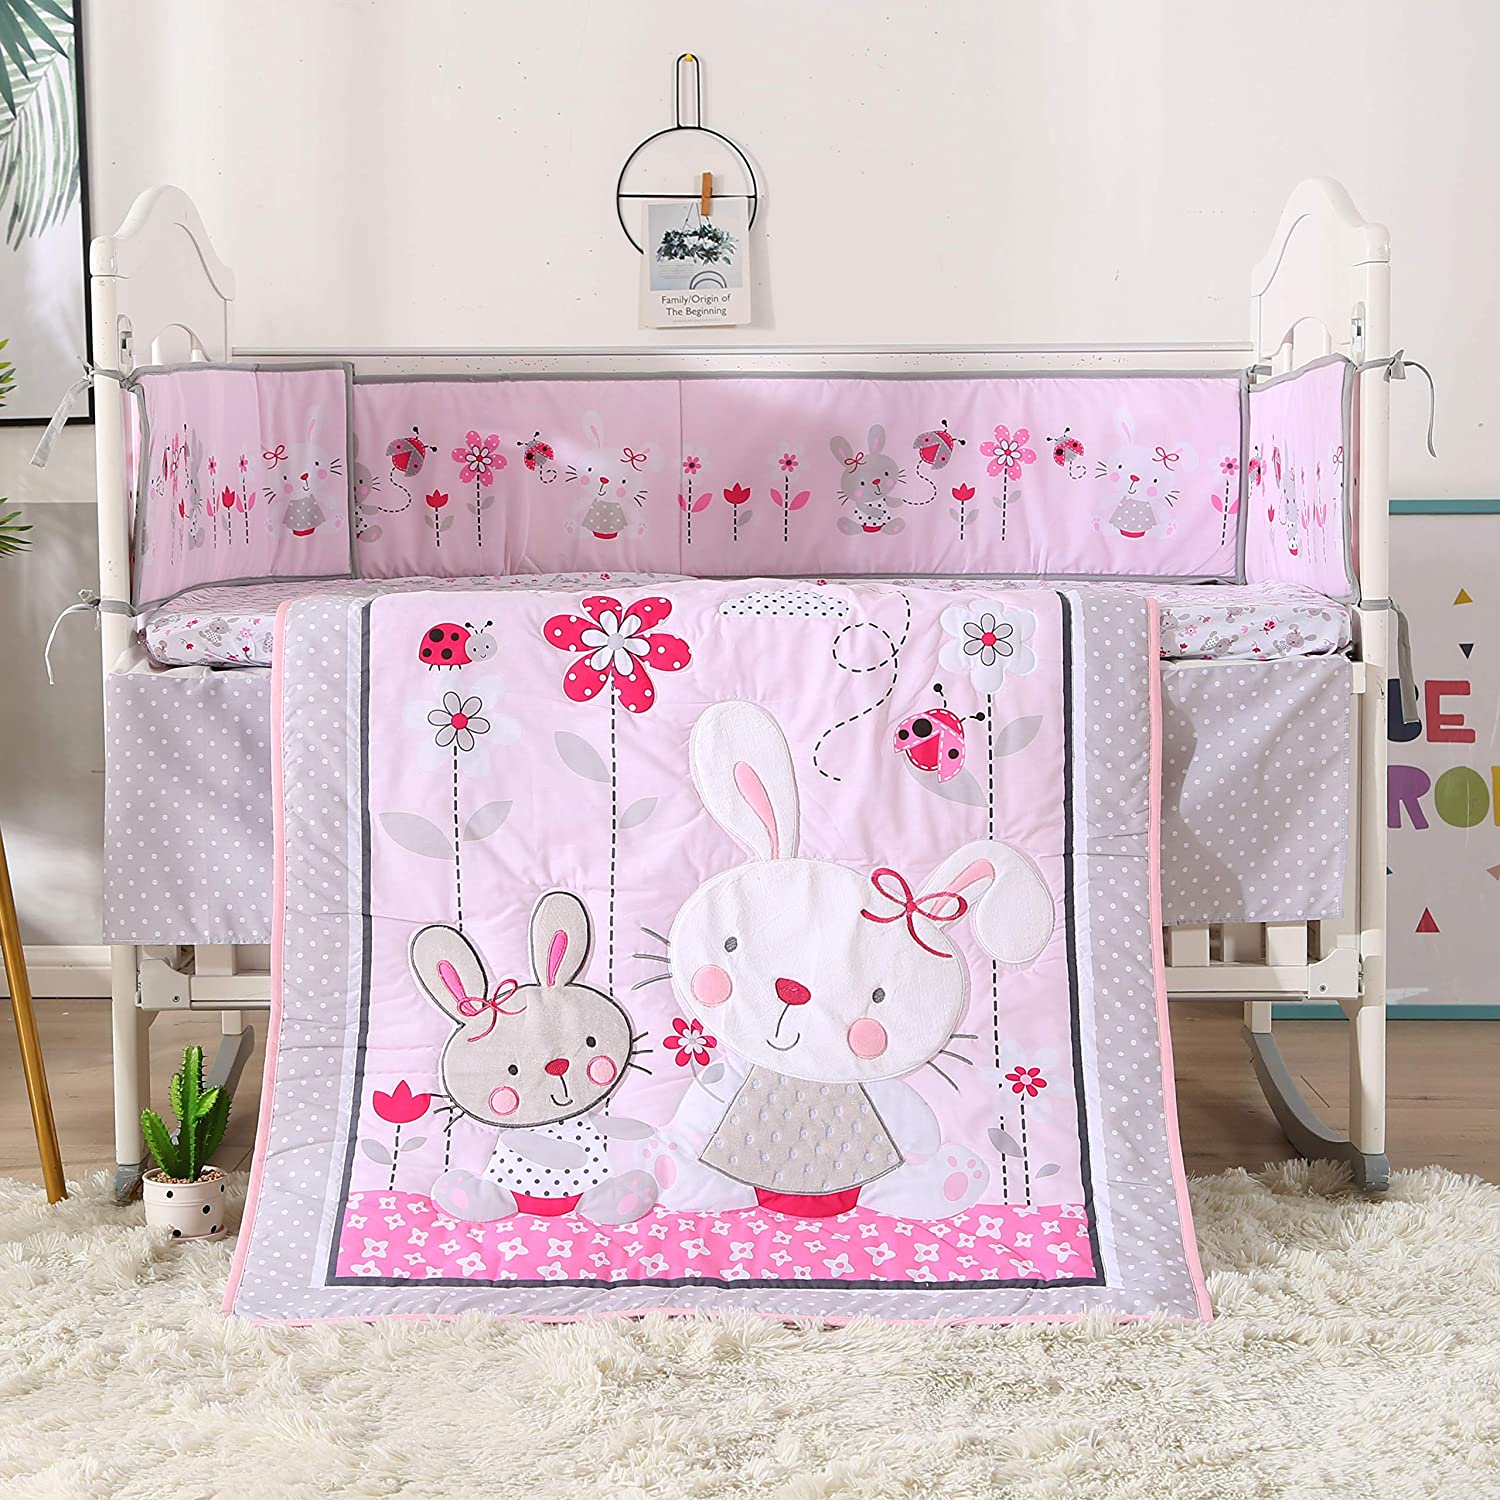 Wowelife Baby Girl Bedding Sets Rabbit 7 Piece 100% Cotton Pink Crib Set with Bumpers(Pink Rabbit)